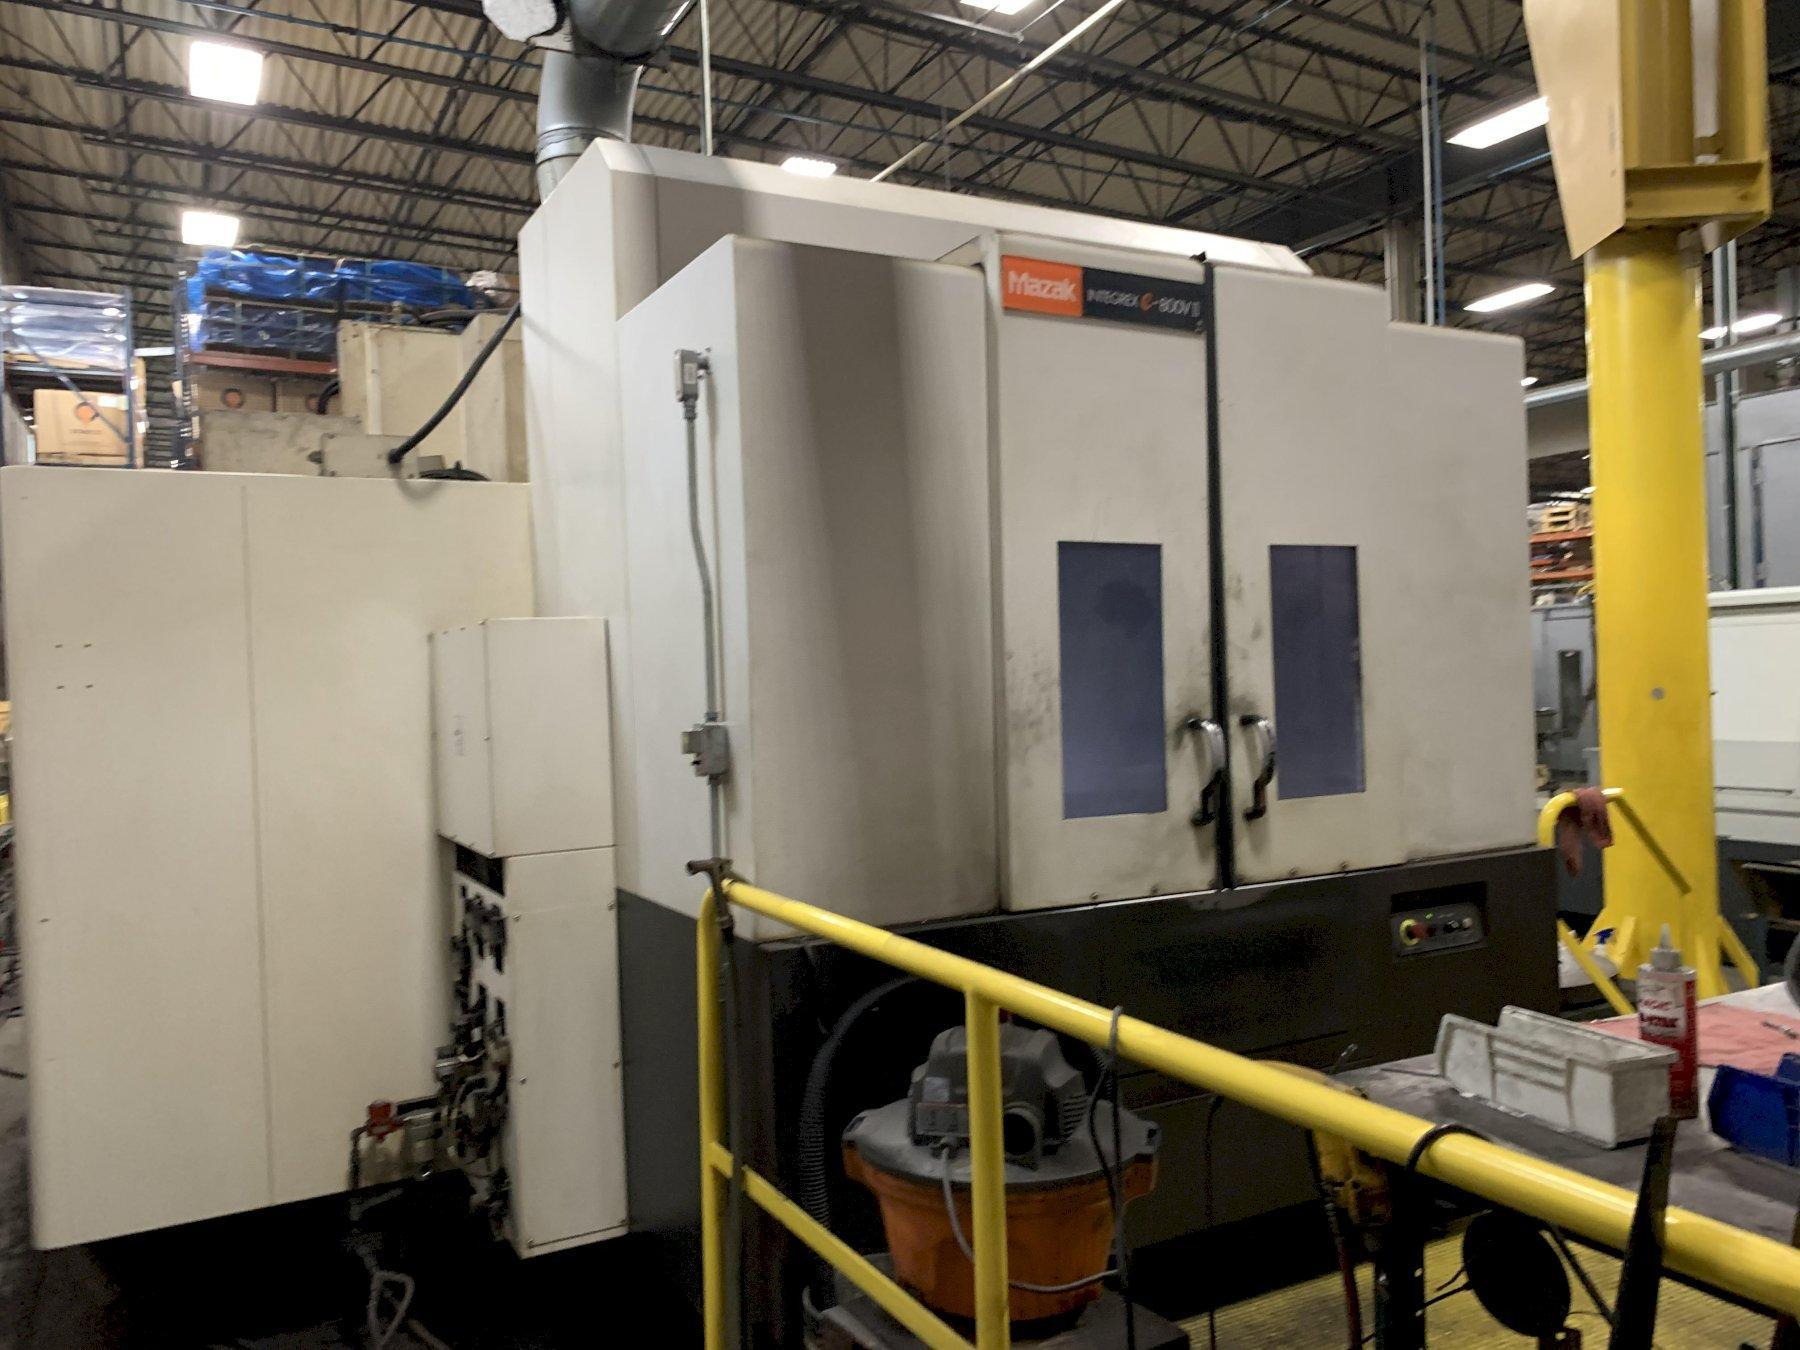 Mazak Integrex e800 V/5 II 5-Axis Turning and 5-Axis Machining Center